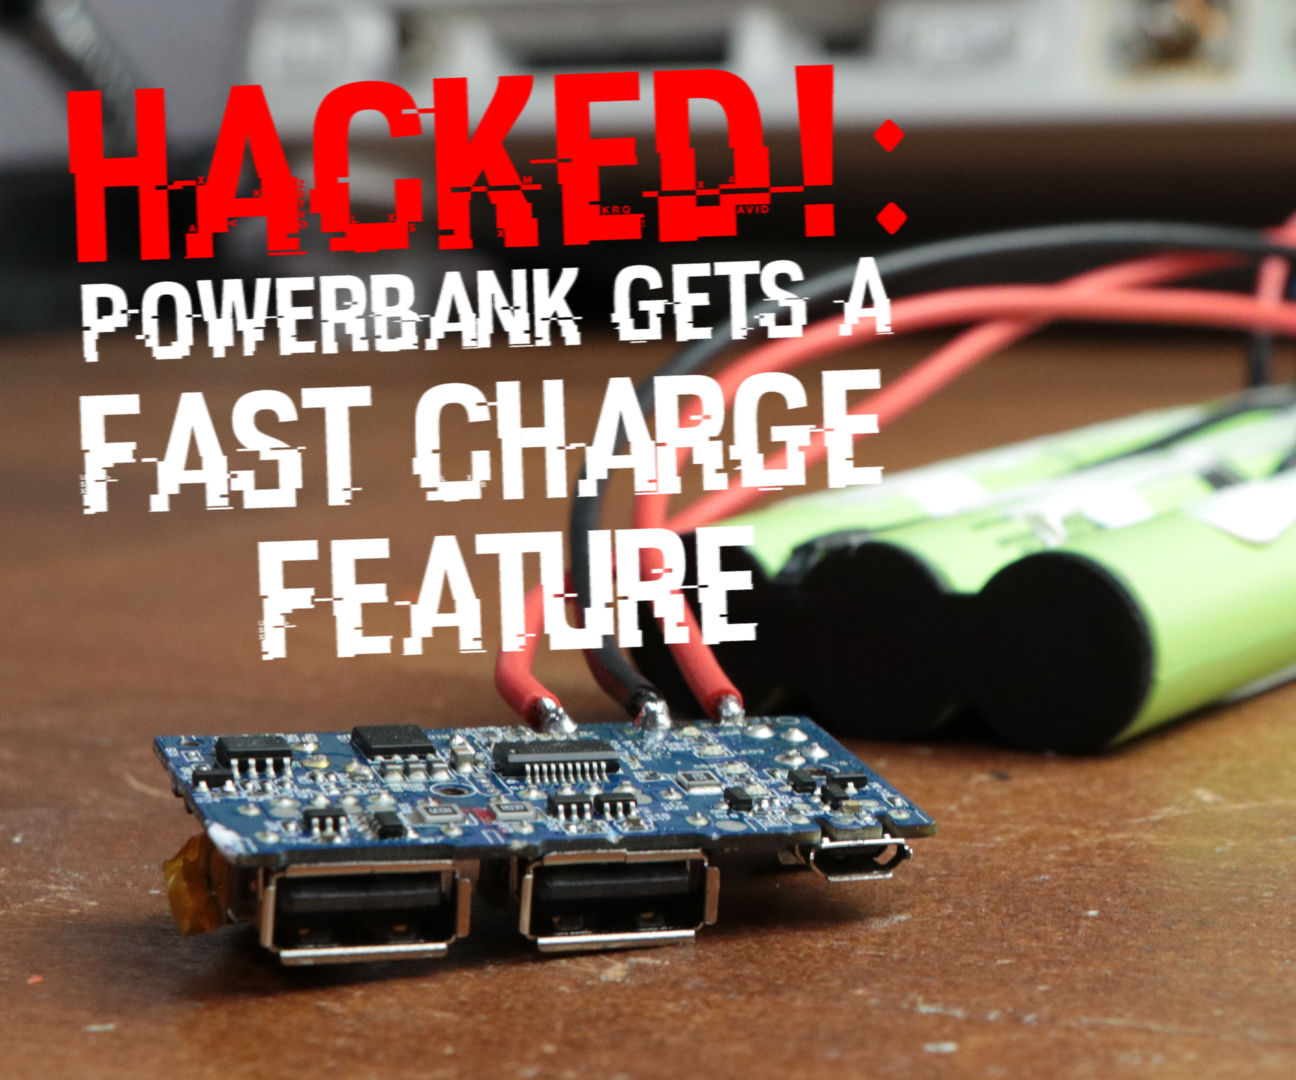 Adding a Fast Charge Feature to a Powerbank